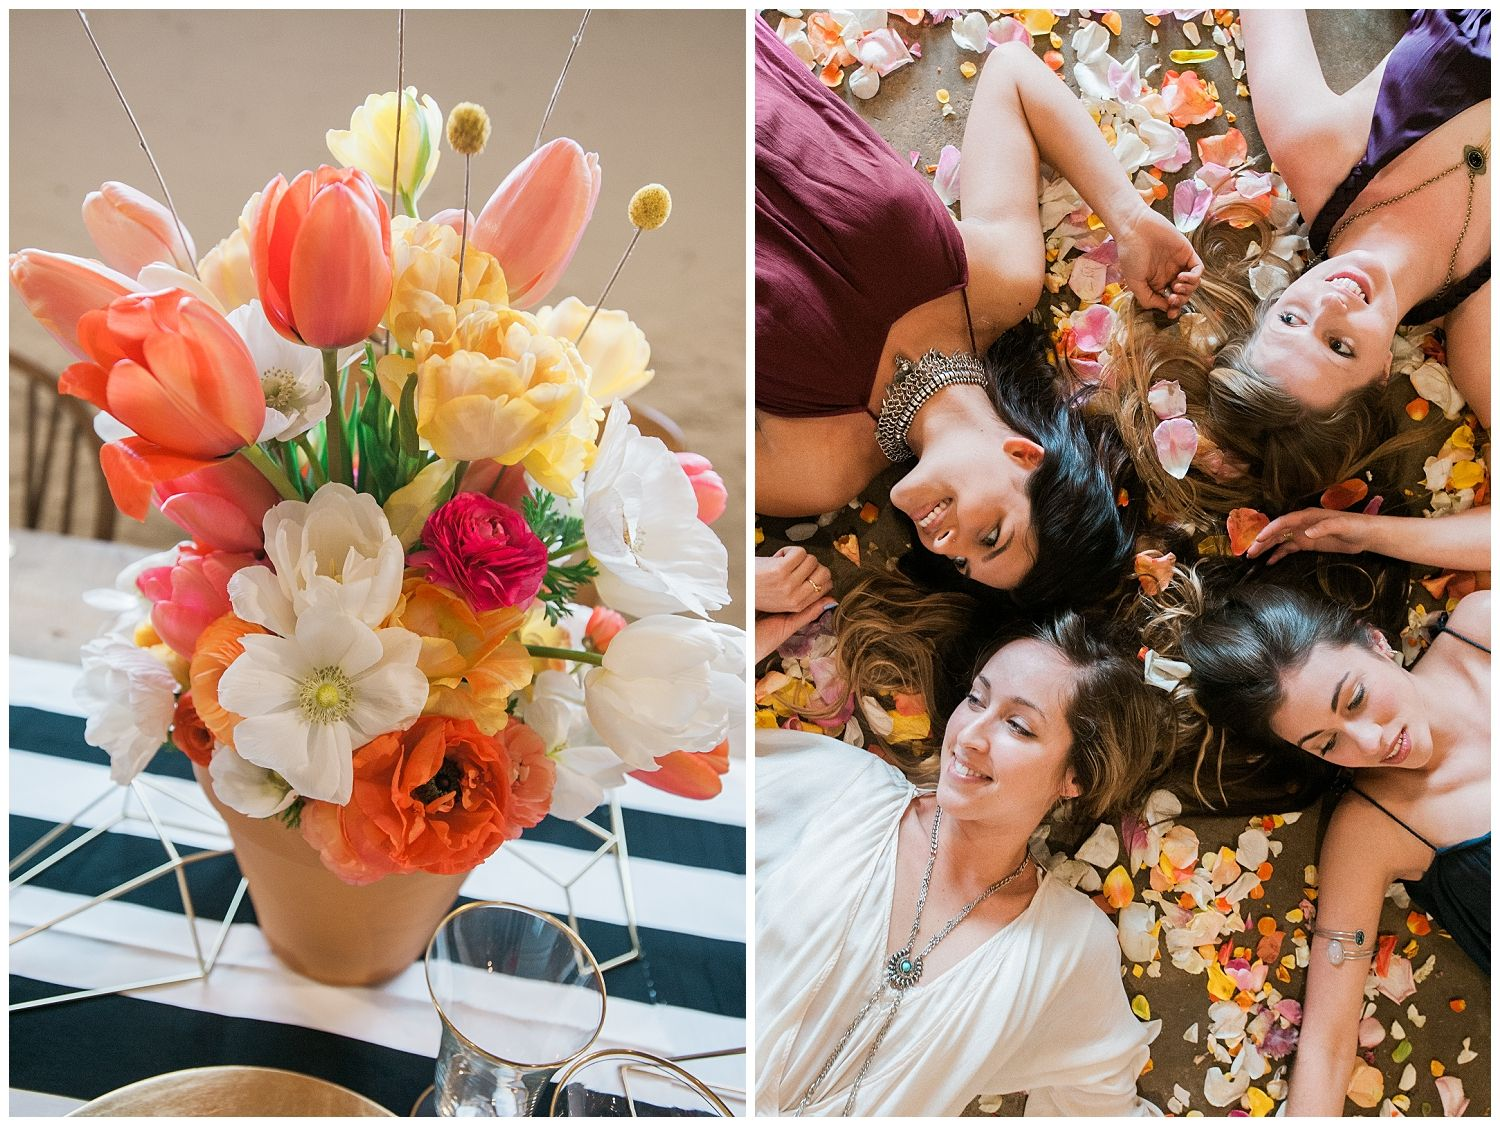 free people wedding guest fashion inspiration at crompton collective